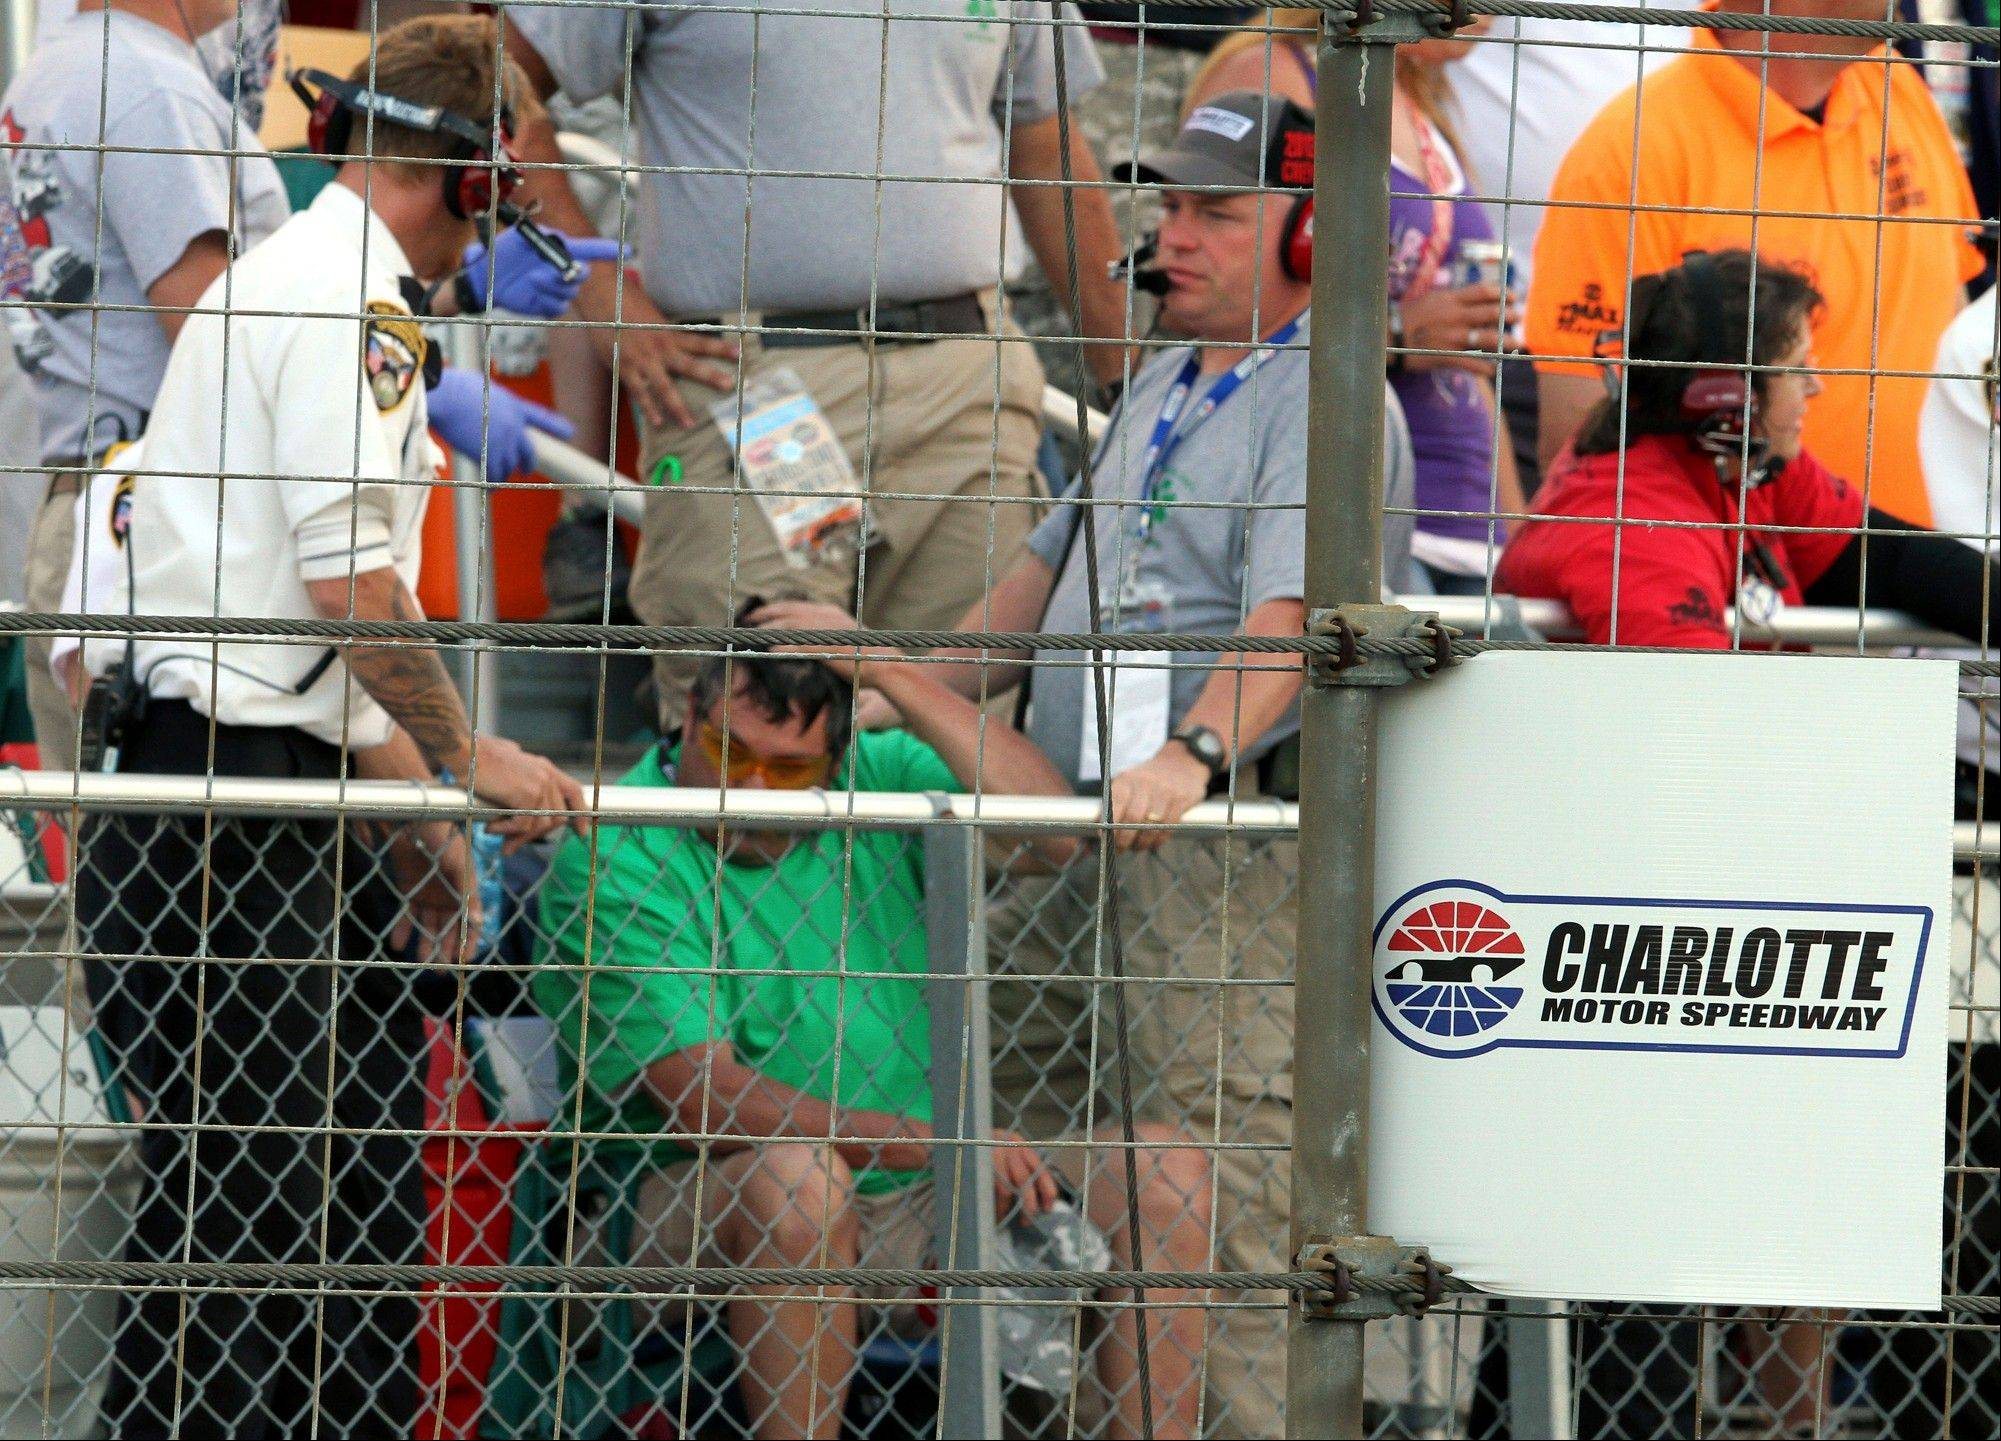 In this photo provided by Fernando Echeverria, security personnel assist a fan injured by a broken television camera cable during the NASCAR Sprint Cup series Coca-Cola 600 auto race at Charlotte Motor Speedway in Concord, N.C., Sunday, May 26, 2013.